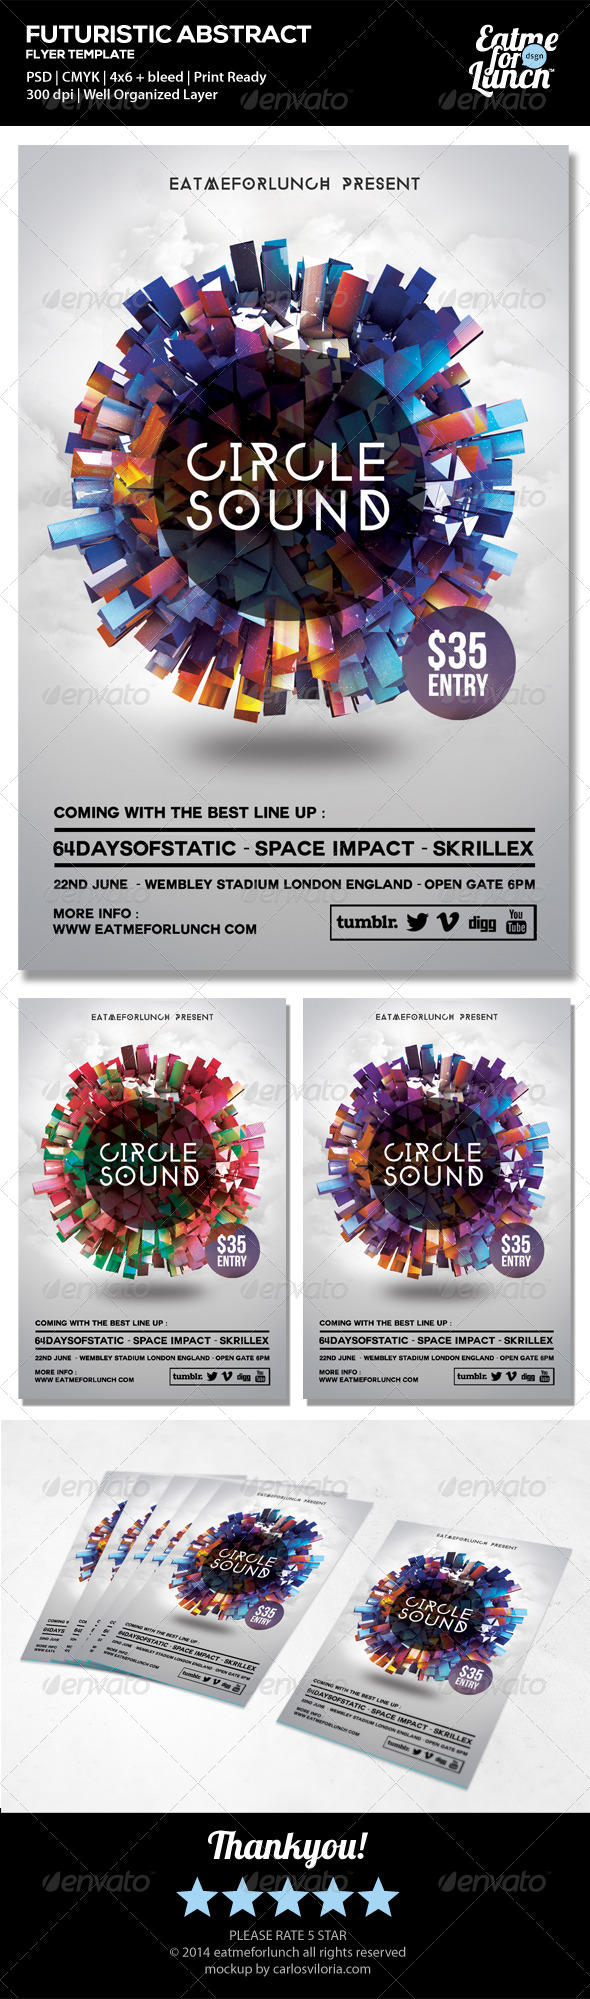 GraphicRiver Futuristic Electronic Dance Club Flyer Templates 6686856